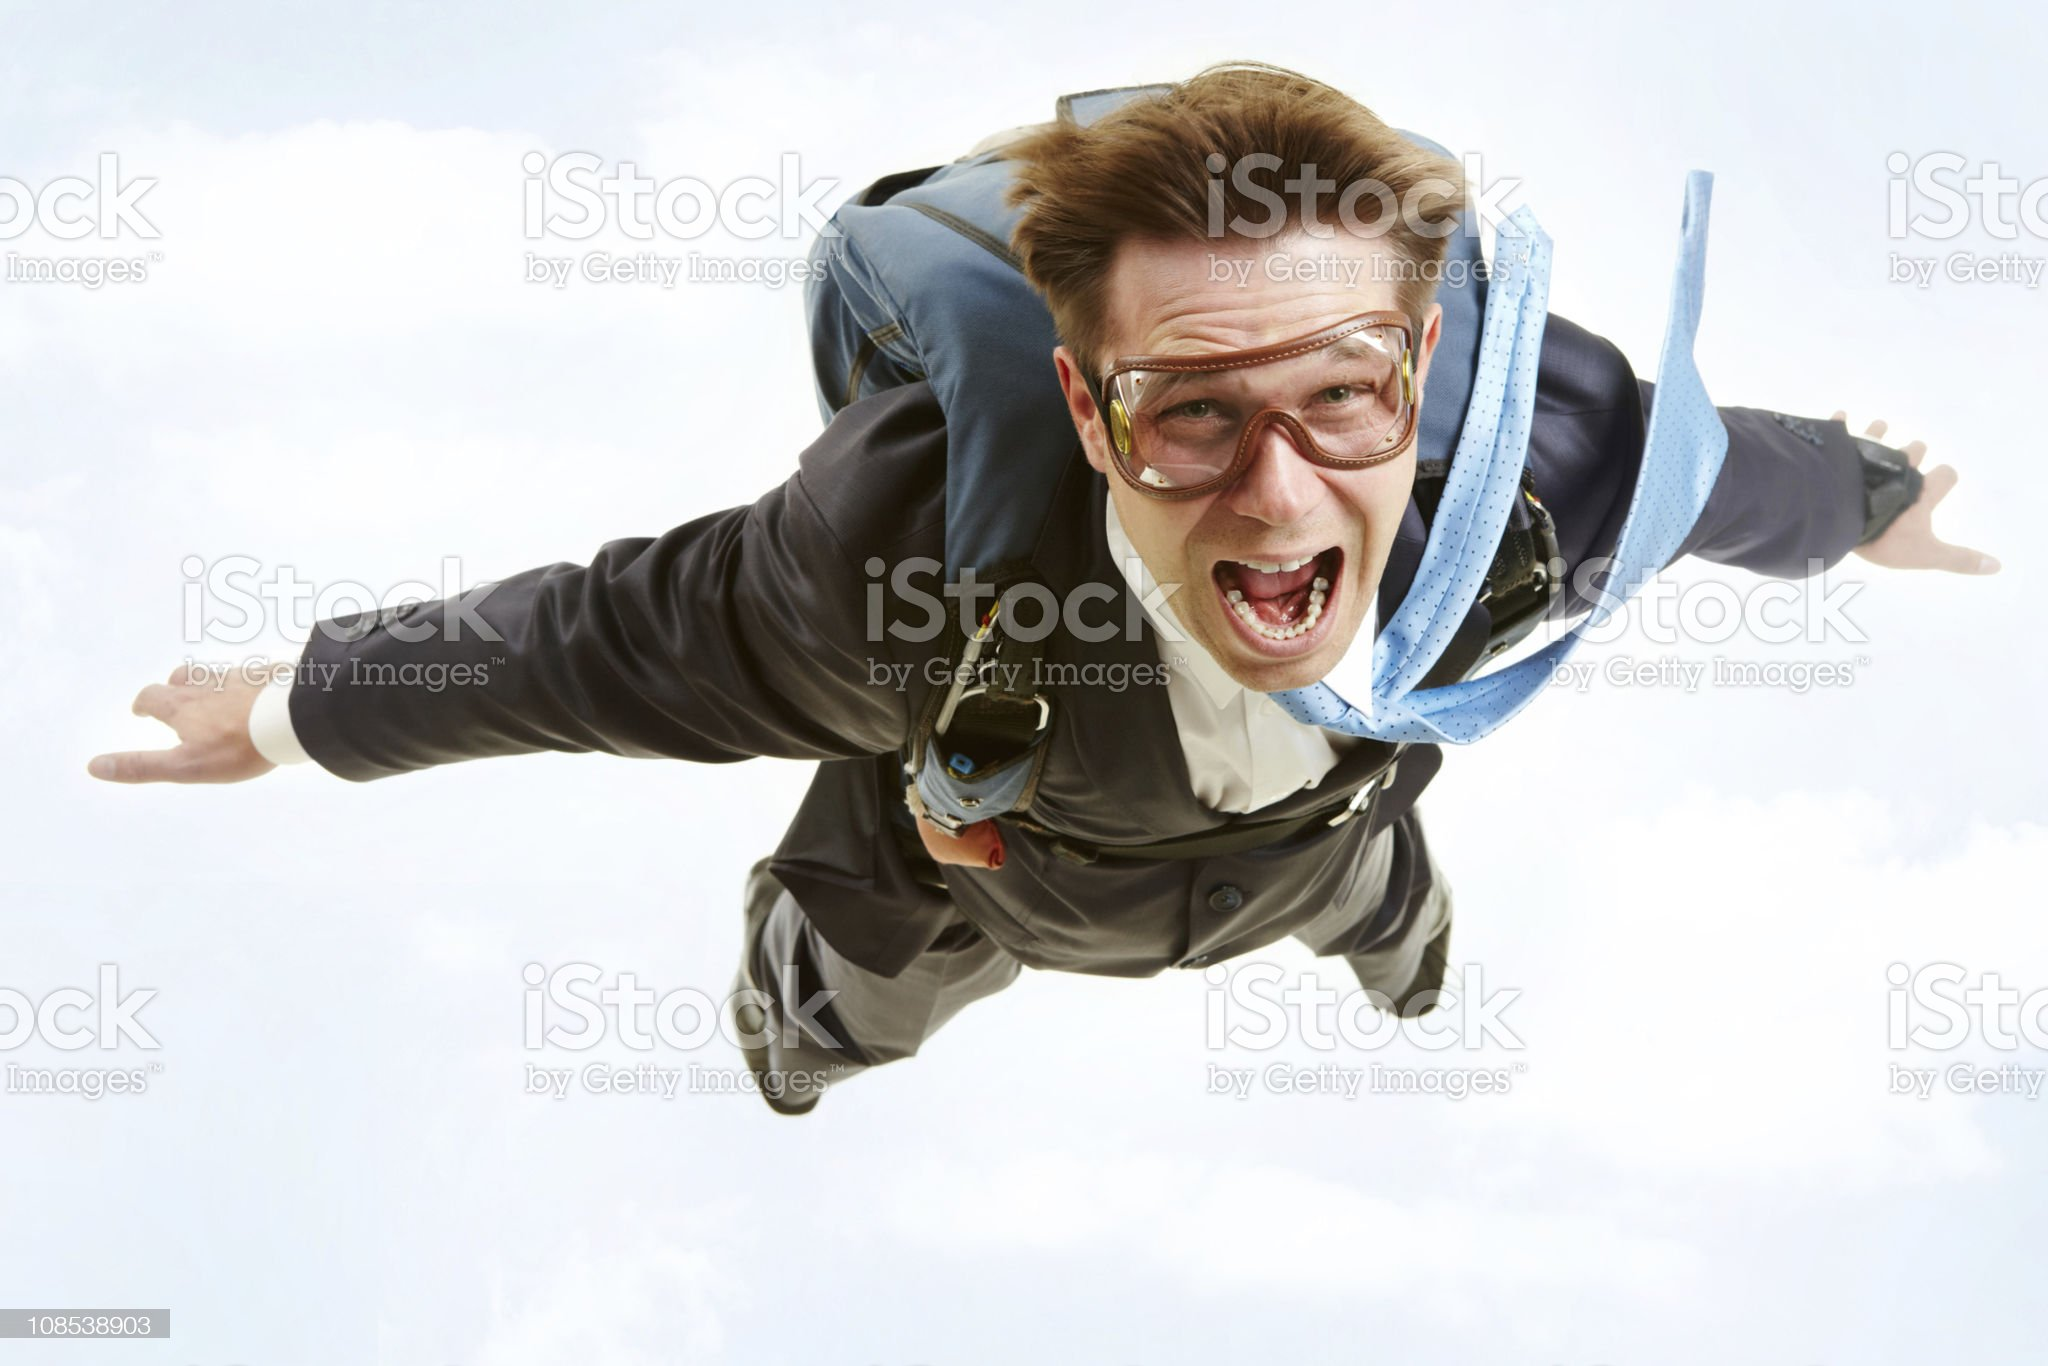 Skydiving man in business suit and goggles royalty-free stock photo